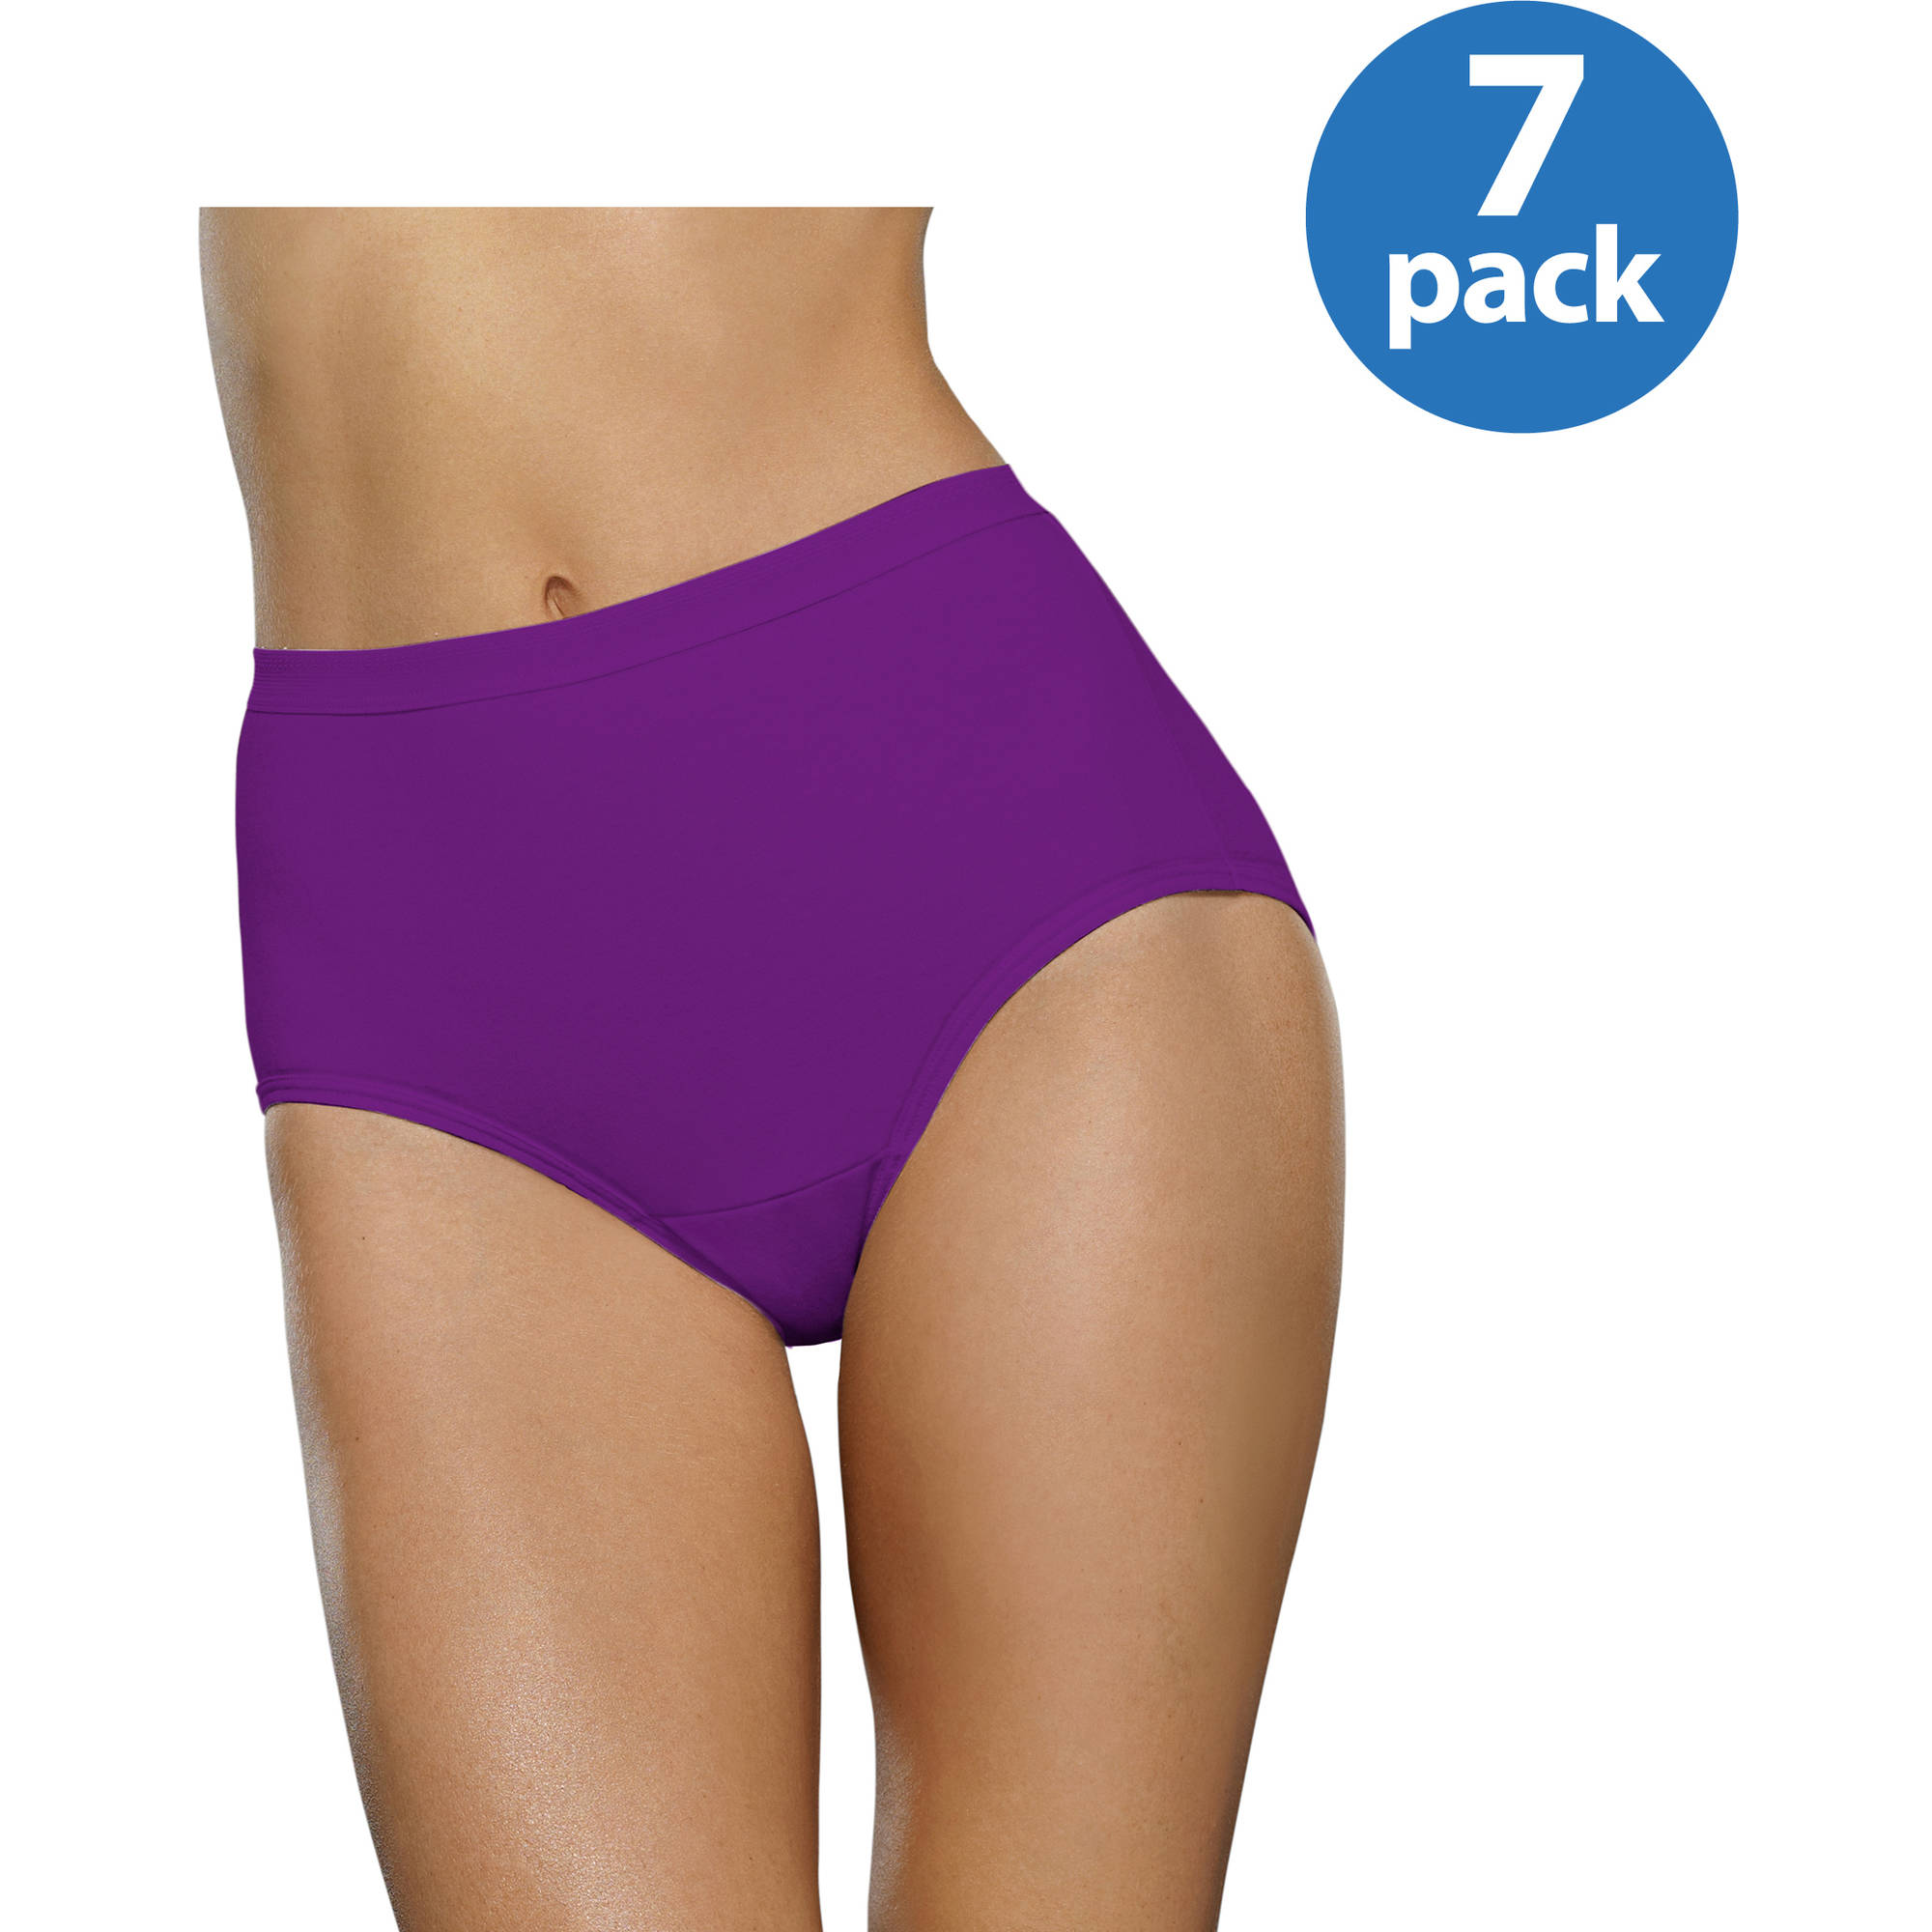 Fruit of the Loom Ladies' 6+1 bonus pack beyondsoft Brief